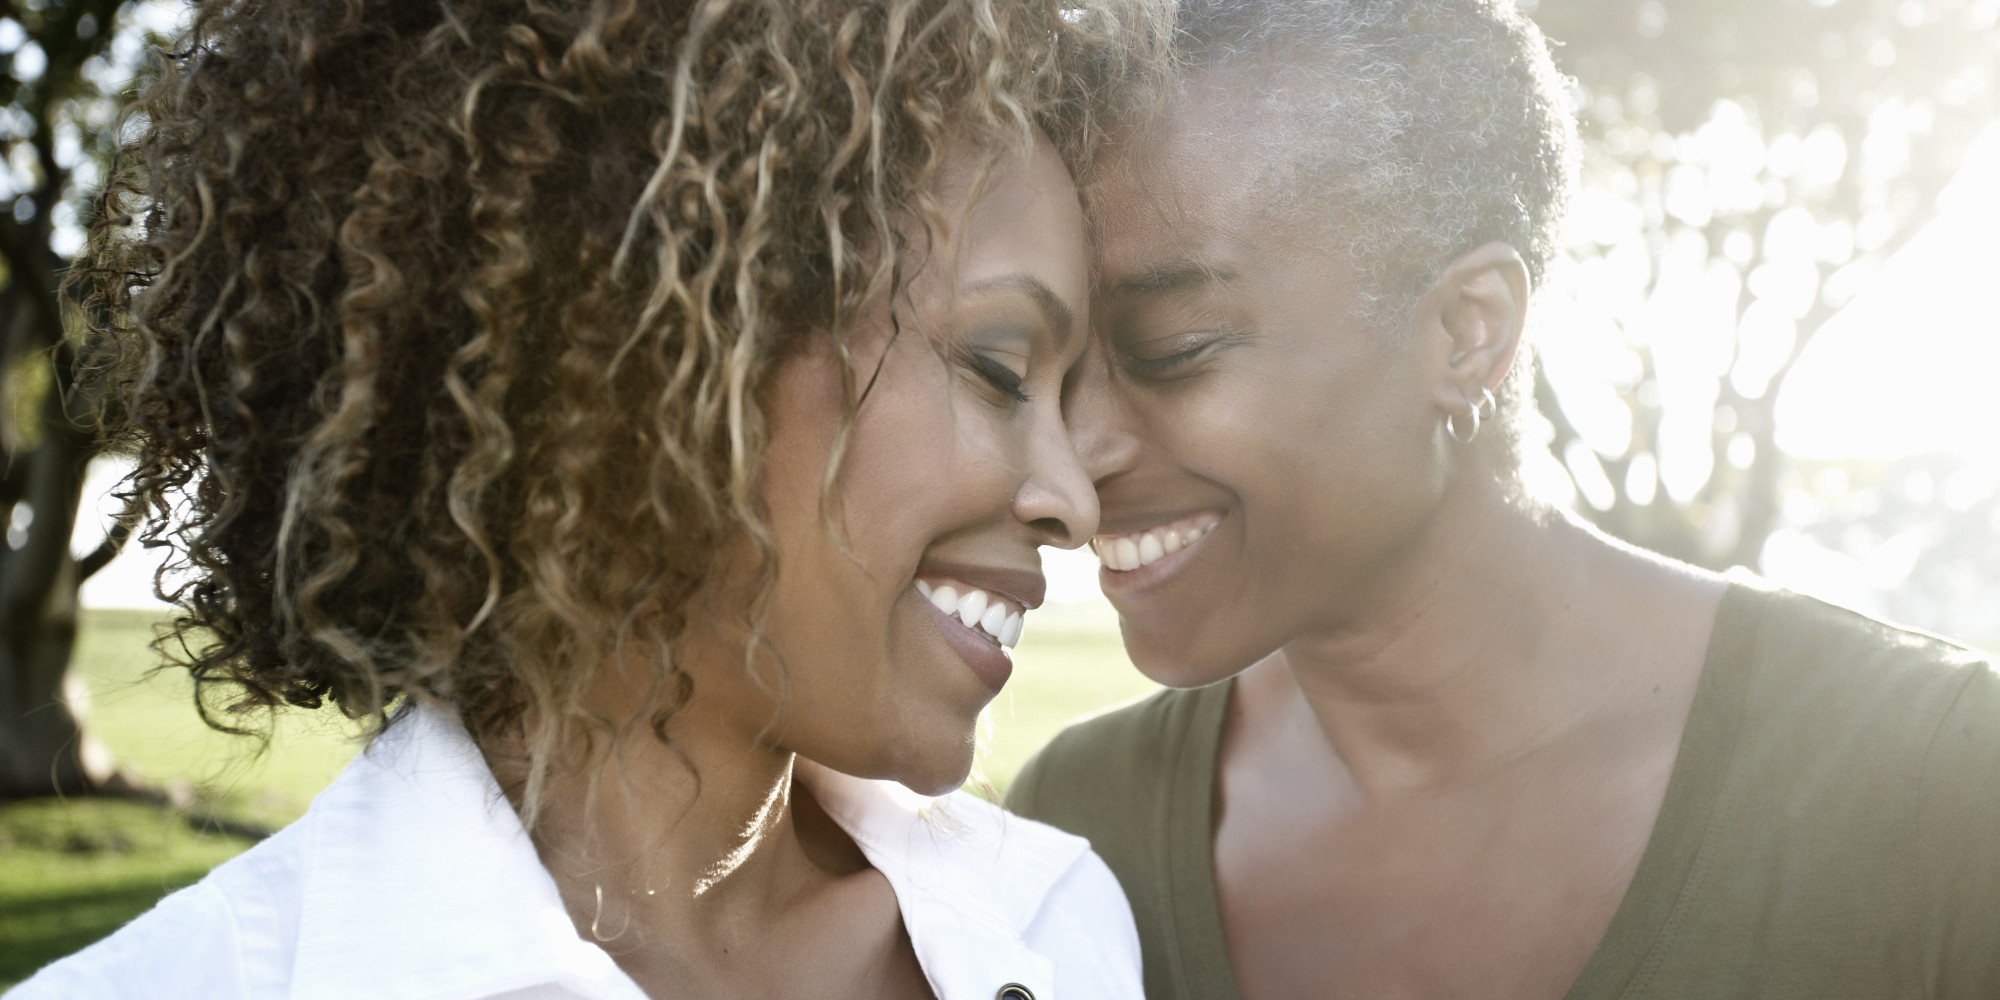 mother and daughter relationship images african american